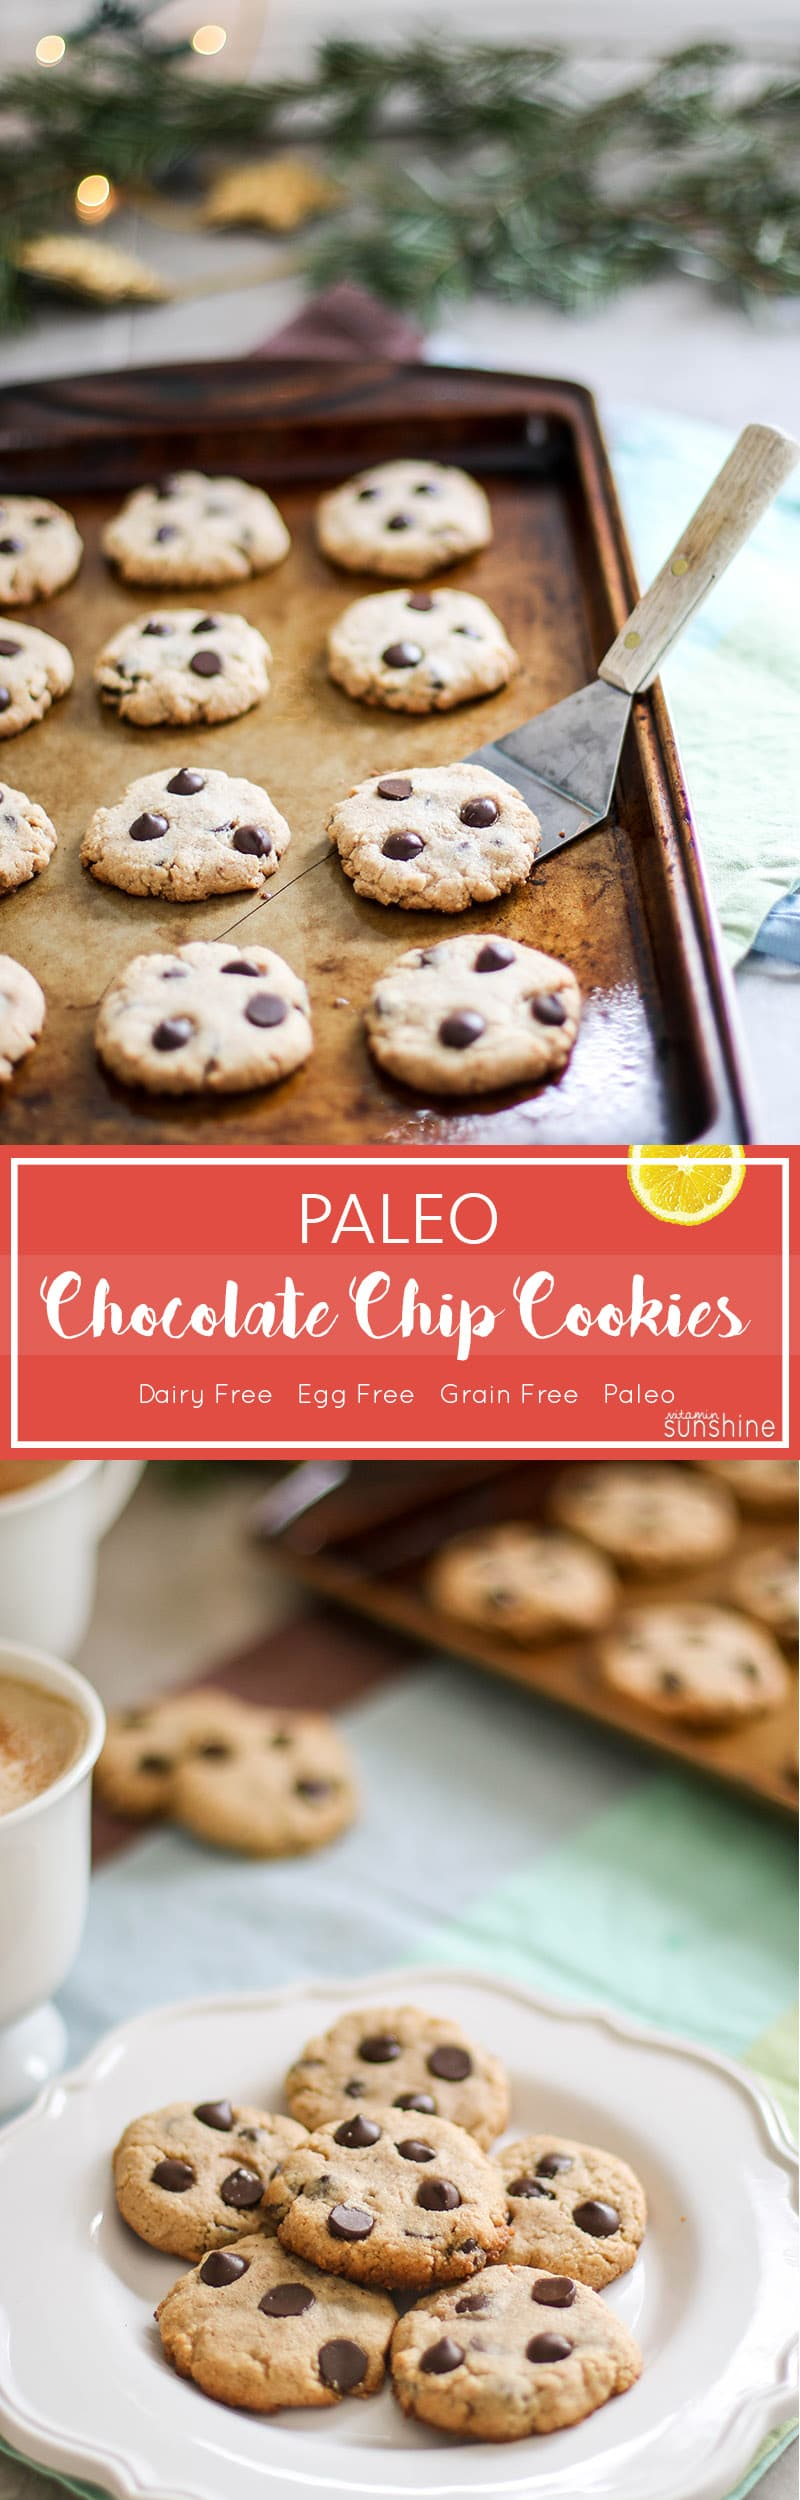 Paleo Chocolate Chip Cookies (5 Ingredients!) - Vitamin Sunshine